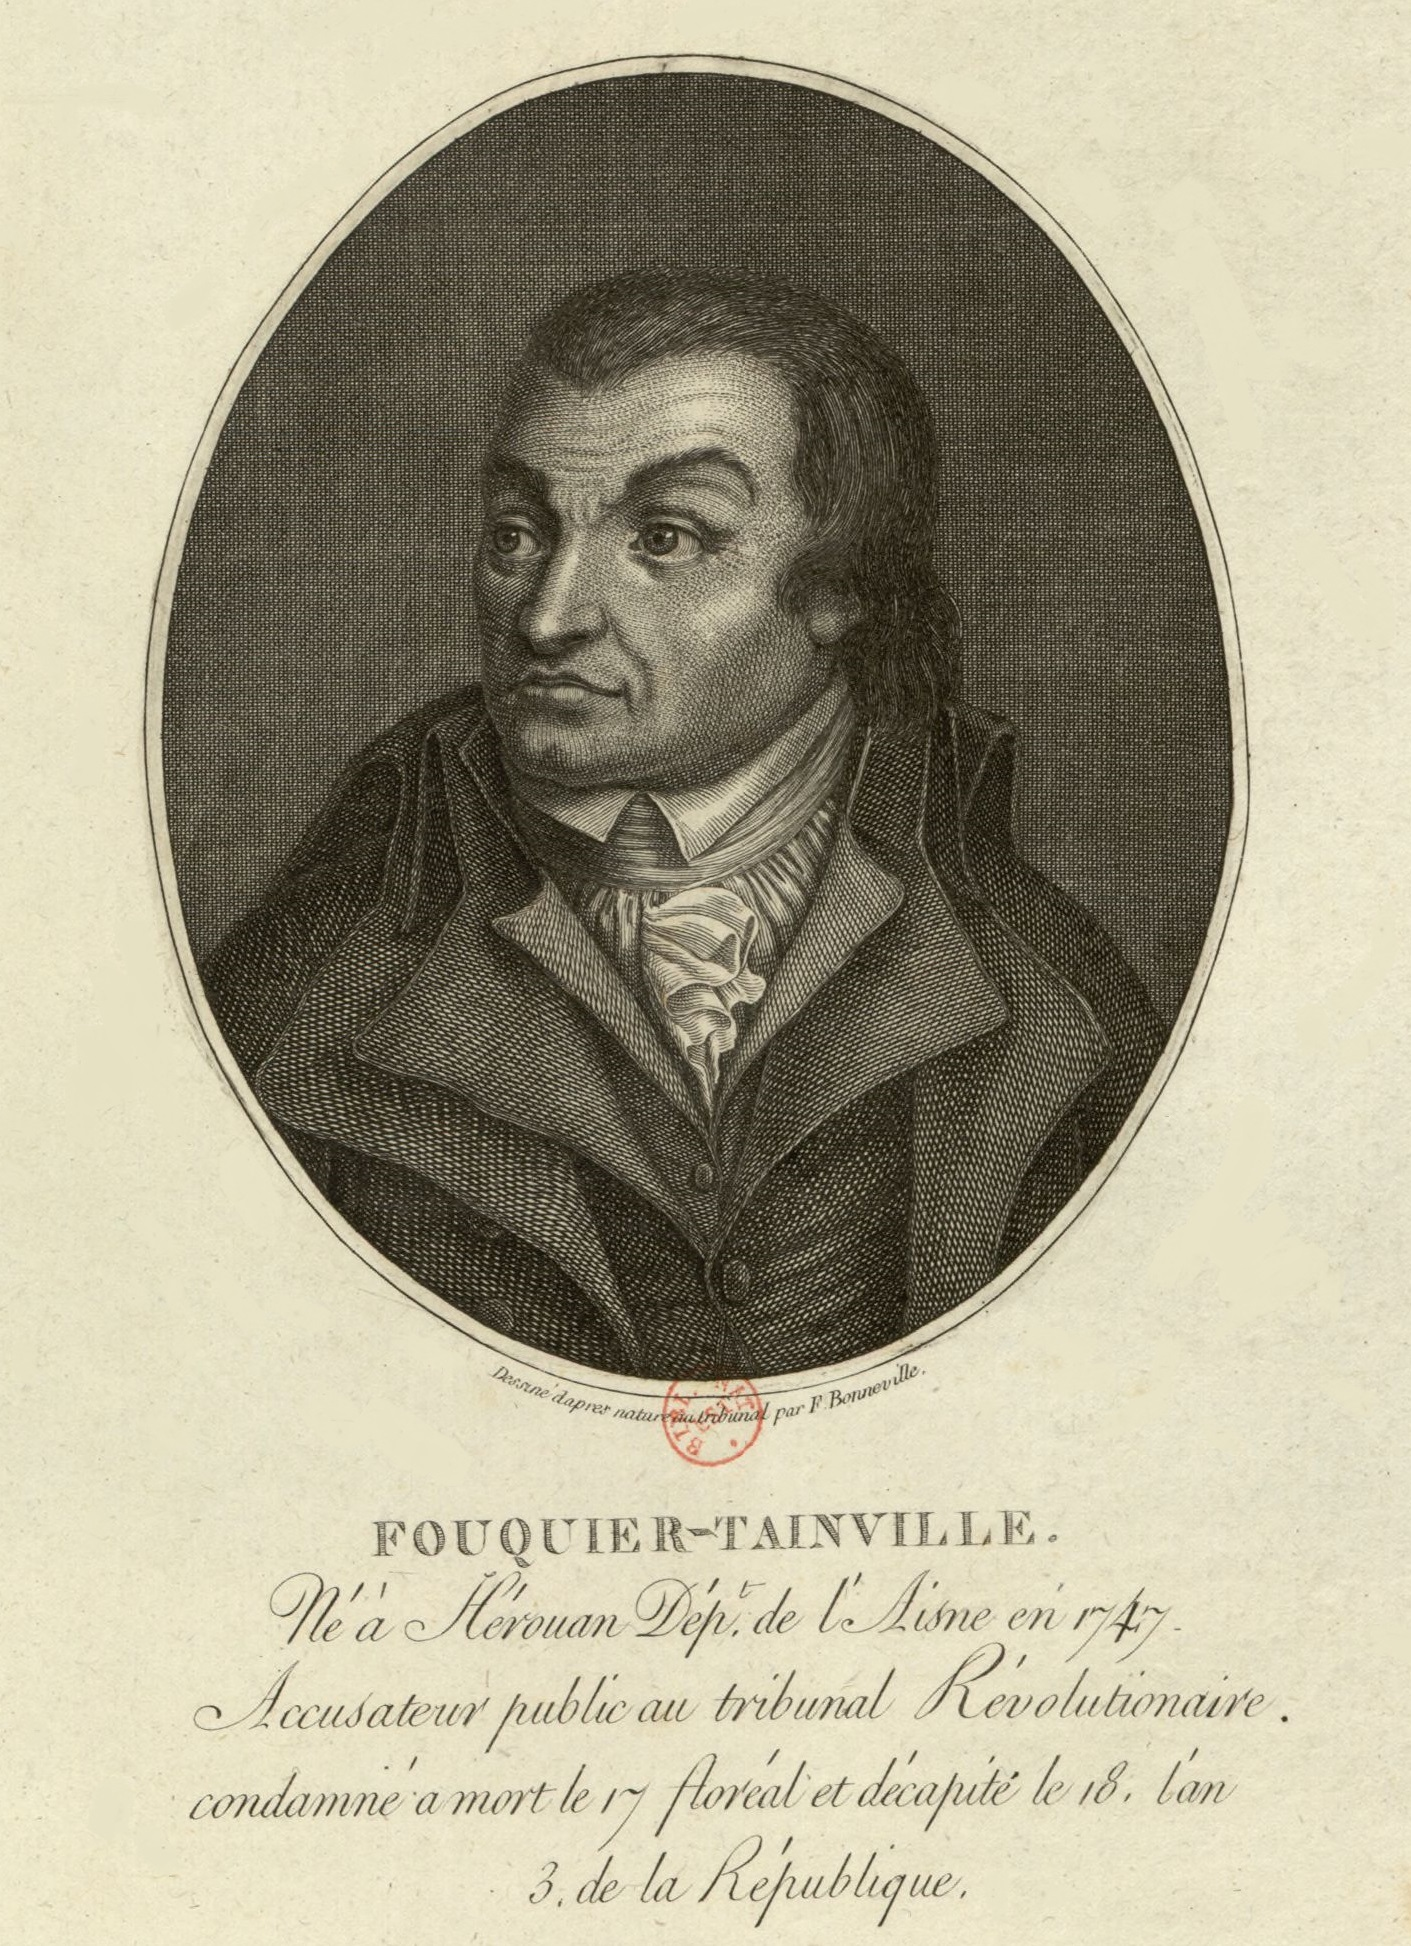 https://upload.wikimedia.org/wikipedia/commons/7/78/Antoine_Fouquier-Tinville.jpeg